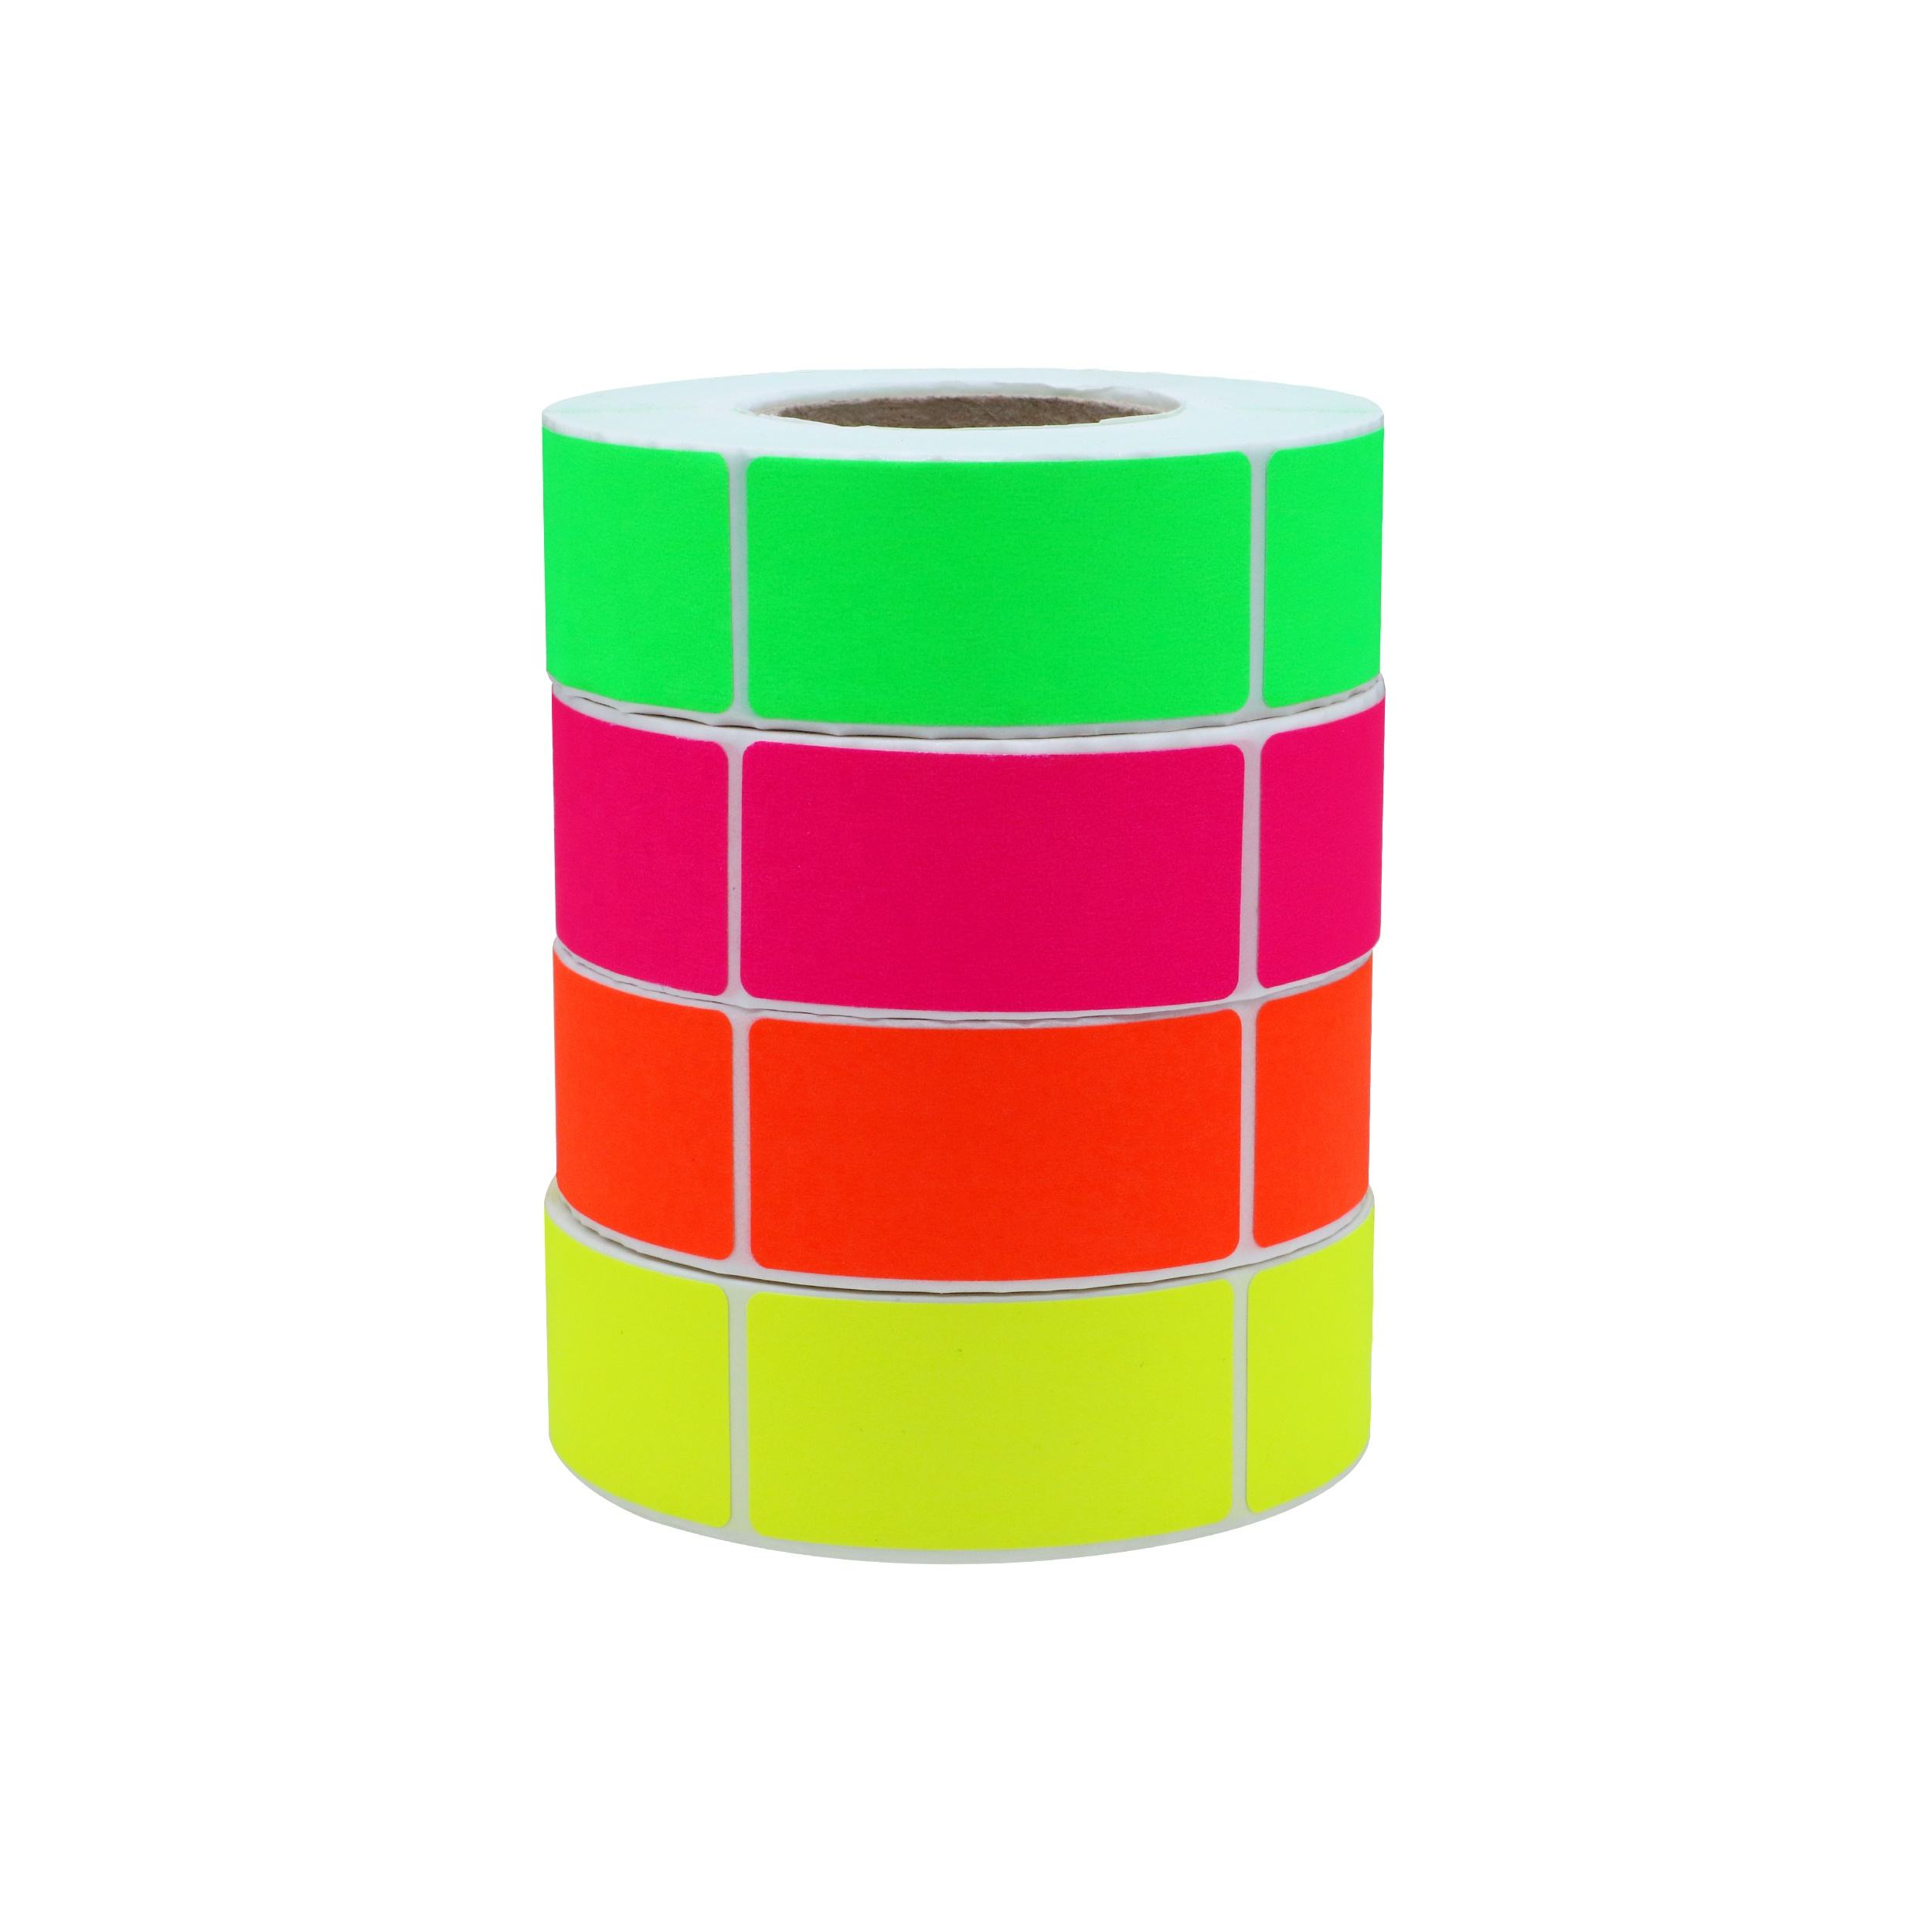 Hybsk 1x2 Inch Color-Code Labels Fluorescence Green/Red/pink/yellow Blank Sticker Rectangle 500 pcs/Roll